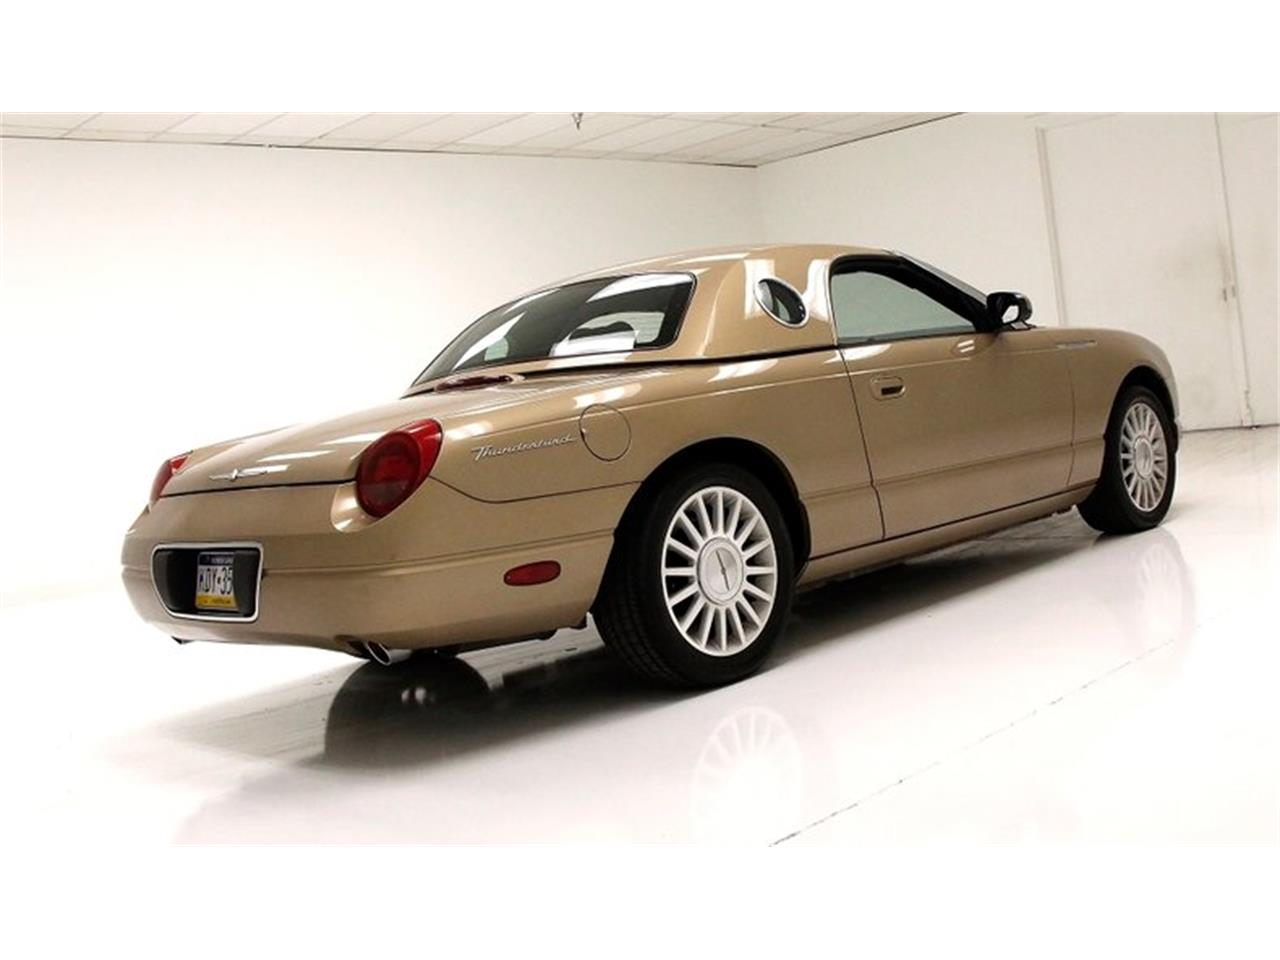 Large Picture of '05 Thunderbird located in Morgantown Pennsylvania - $16,500.00 - Q6CY